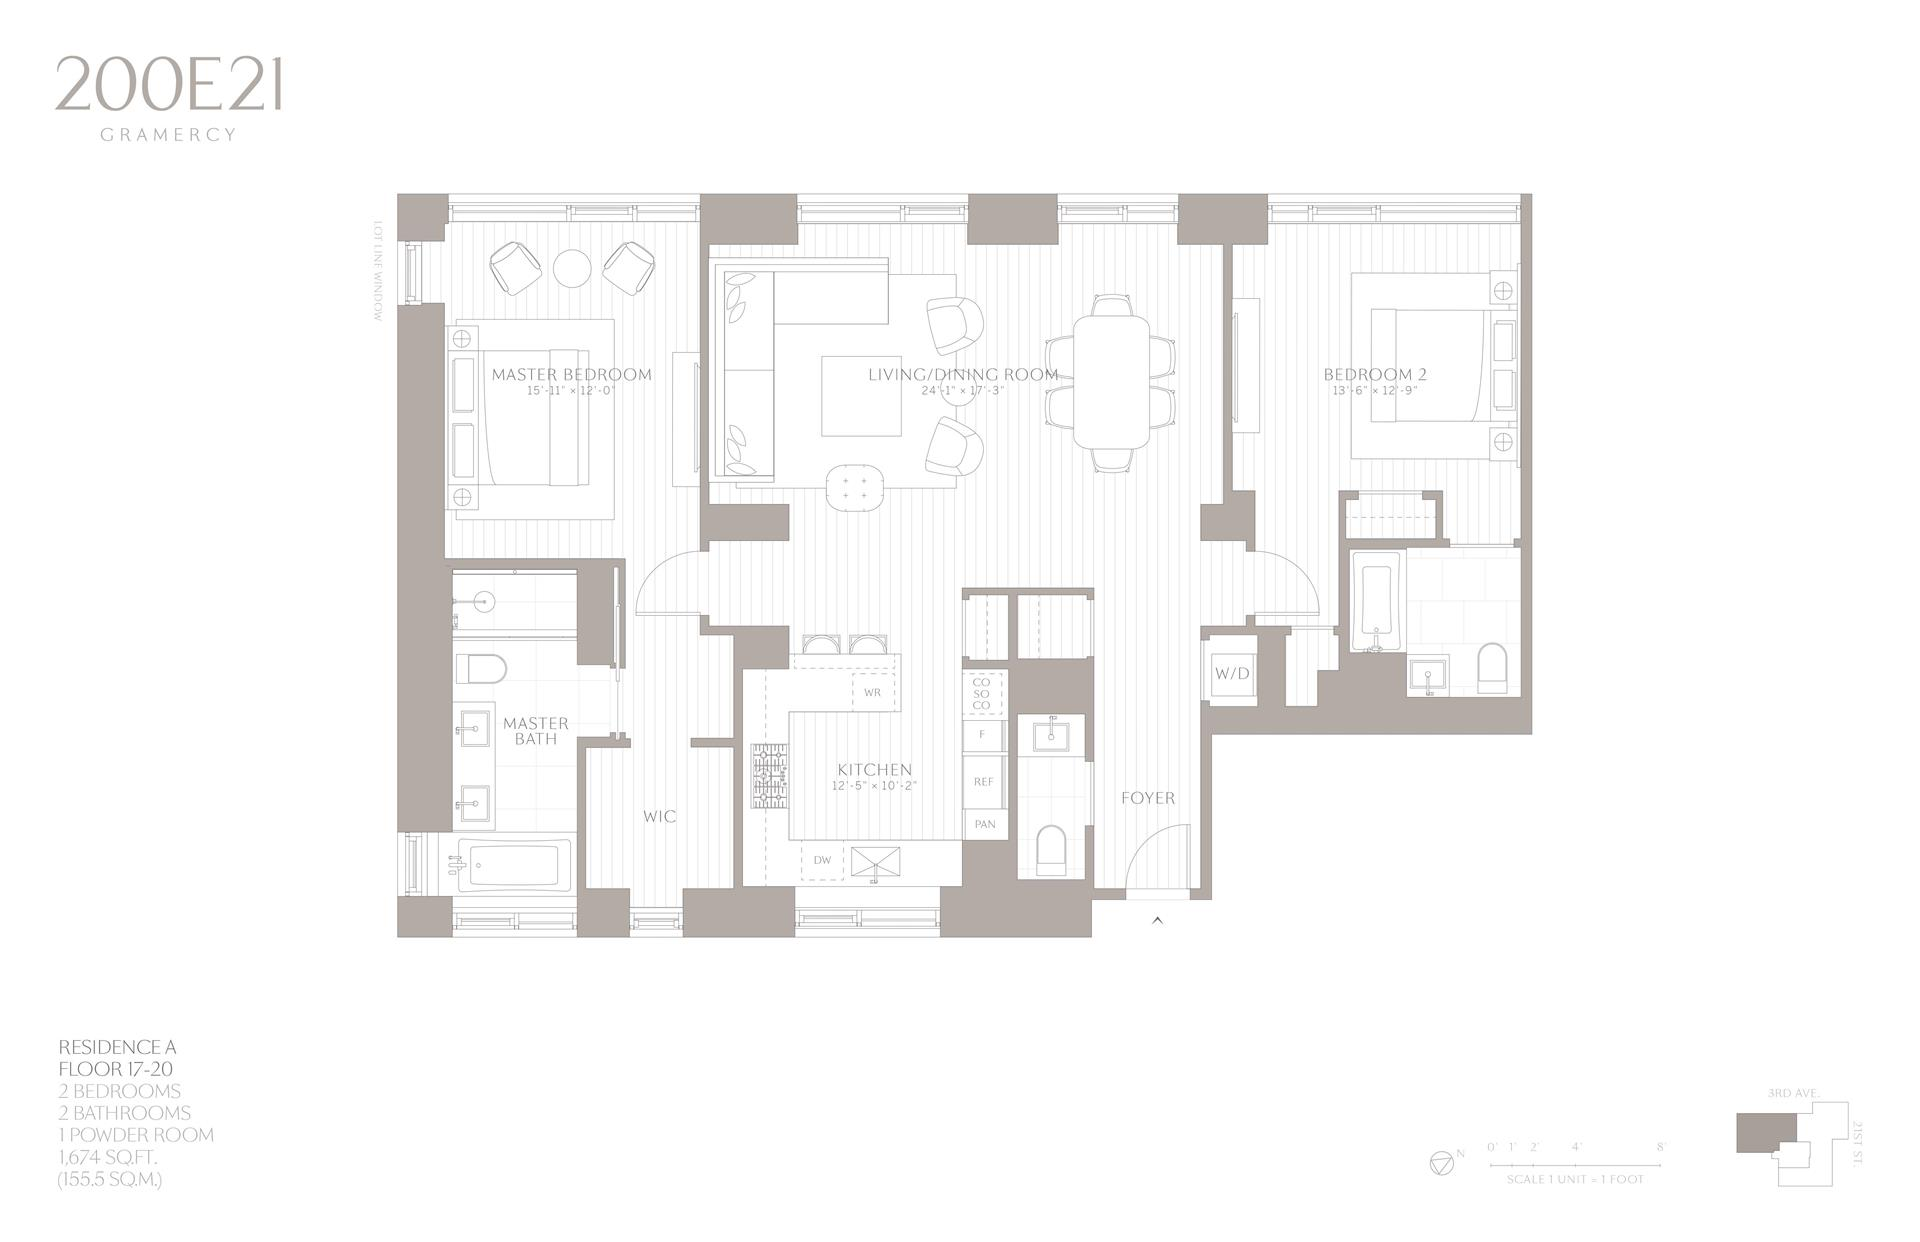 Floor plan of 200 East 21st St, 20A - Gramercy - Union Square, New York